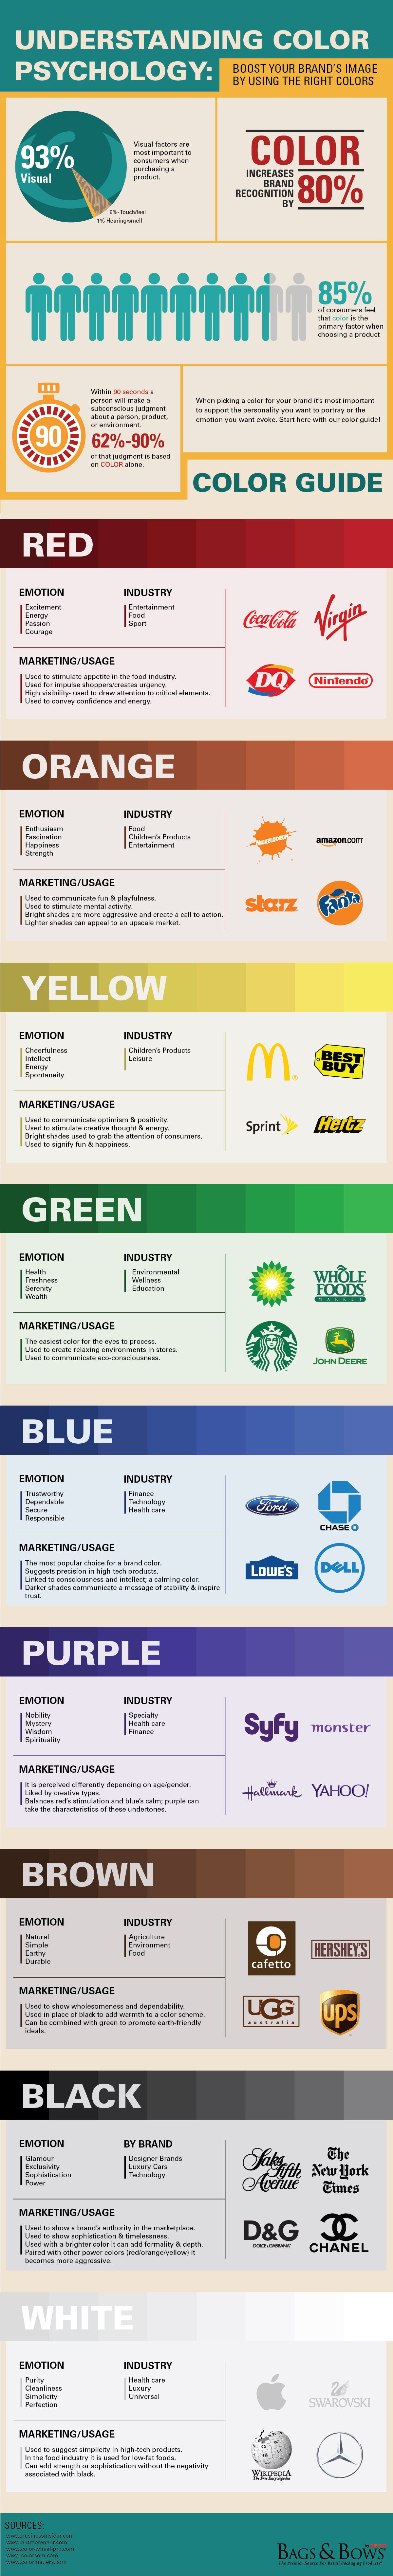 Psychology of Color: Boost Brand by Using the Right Colors